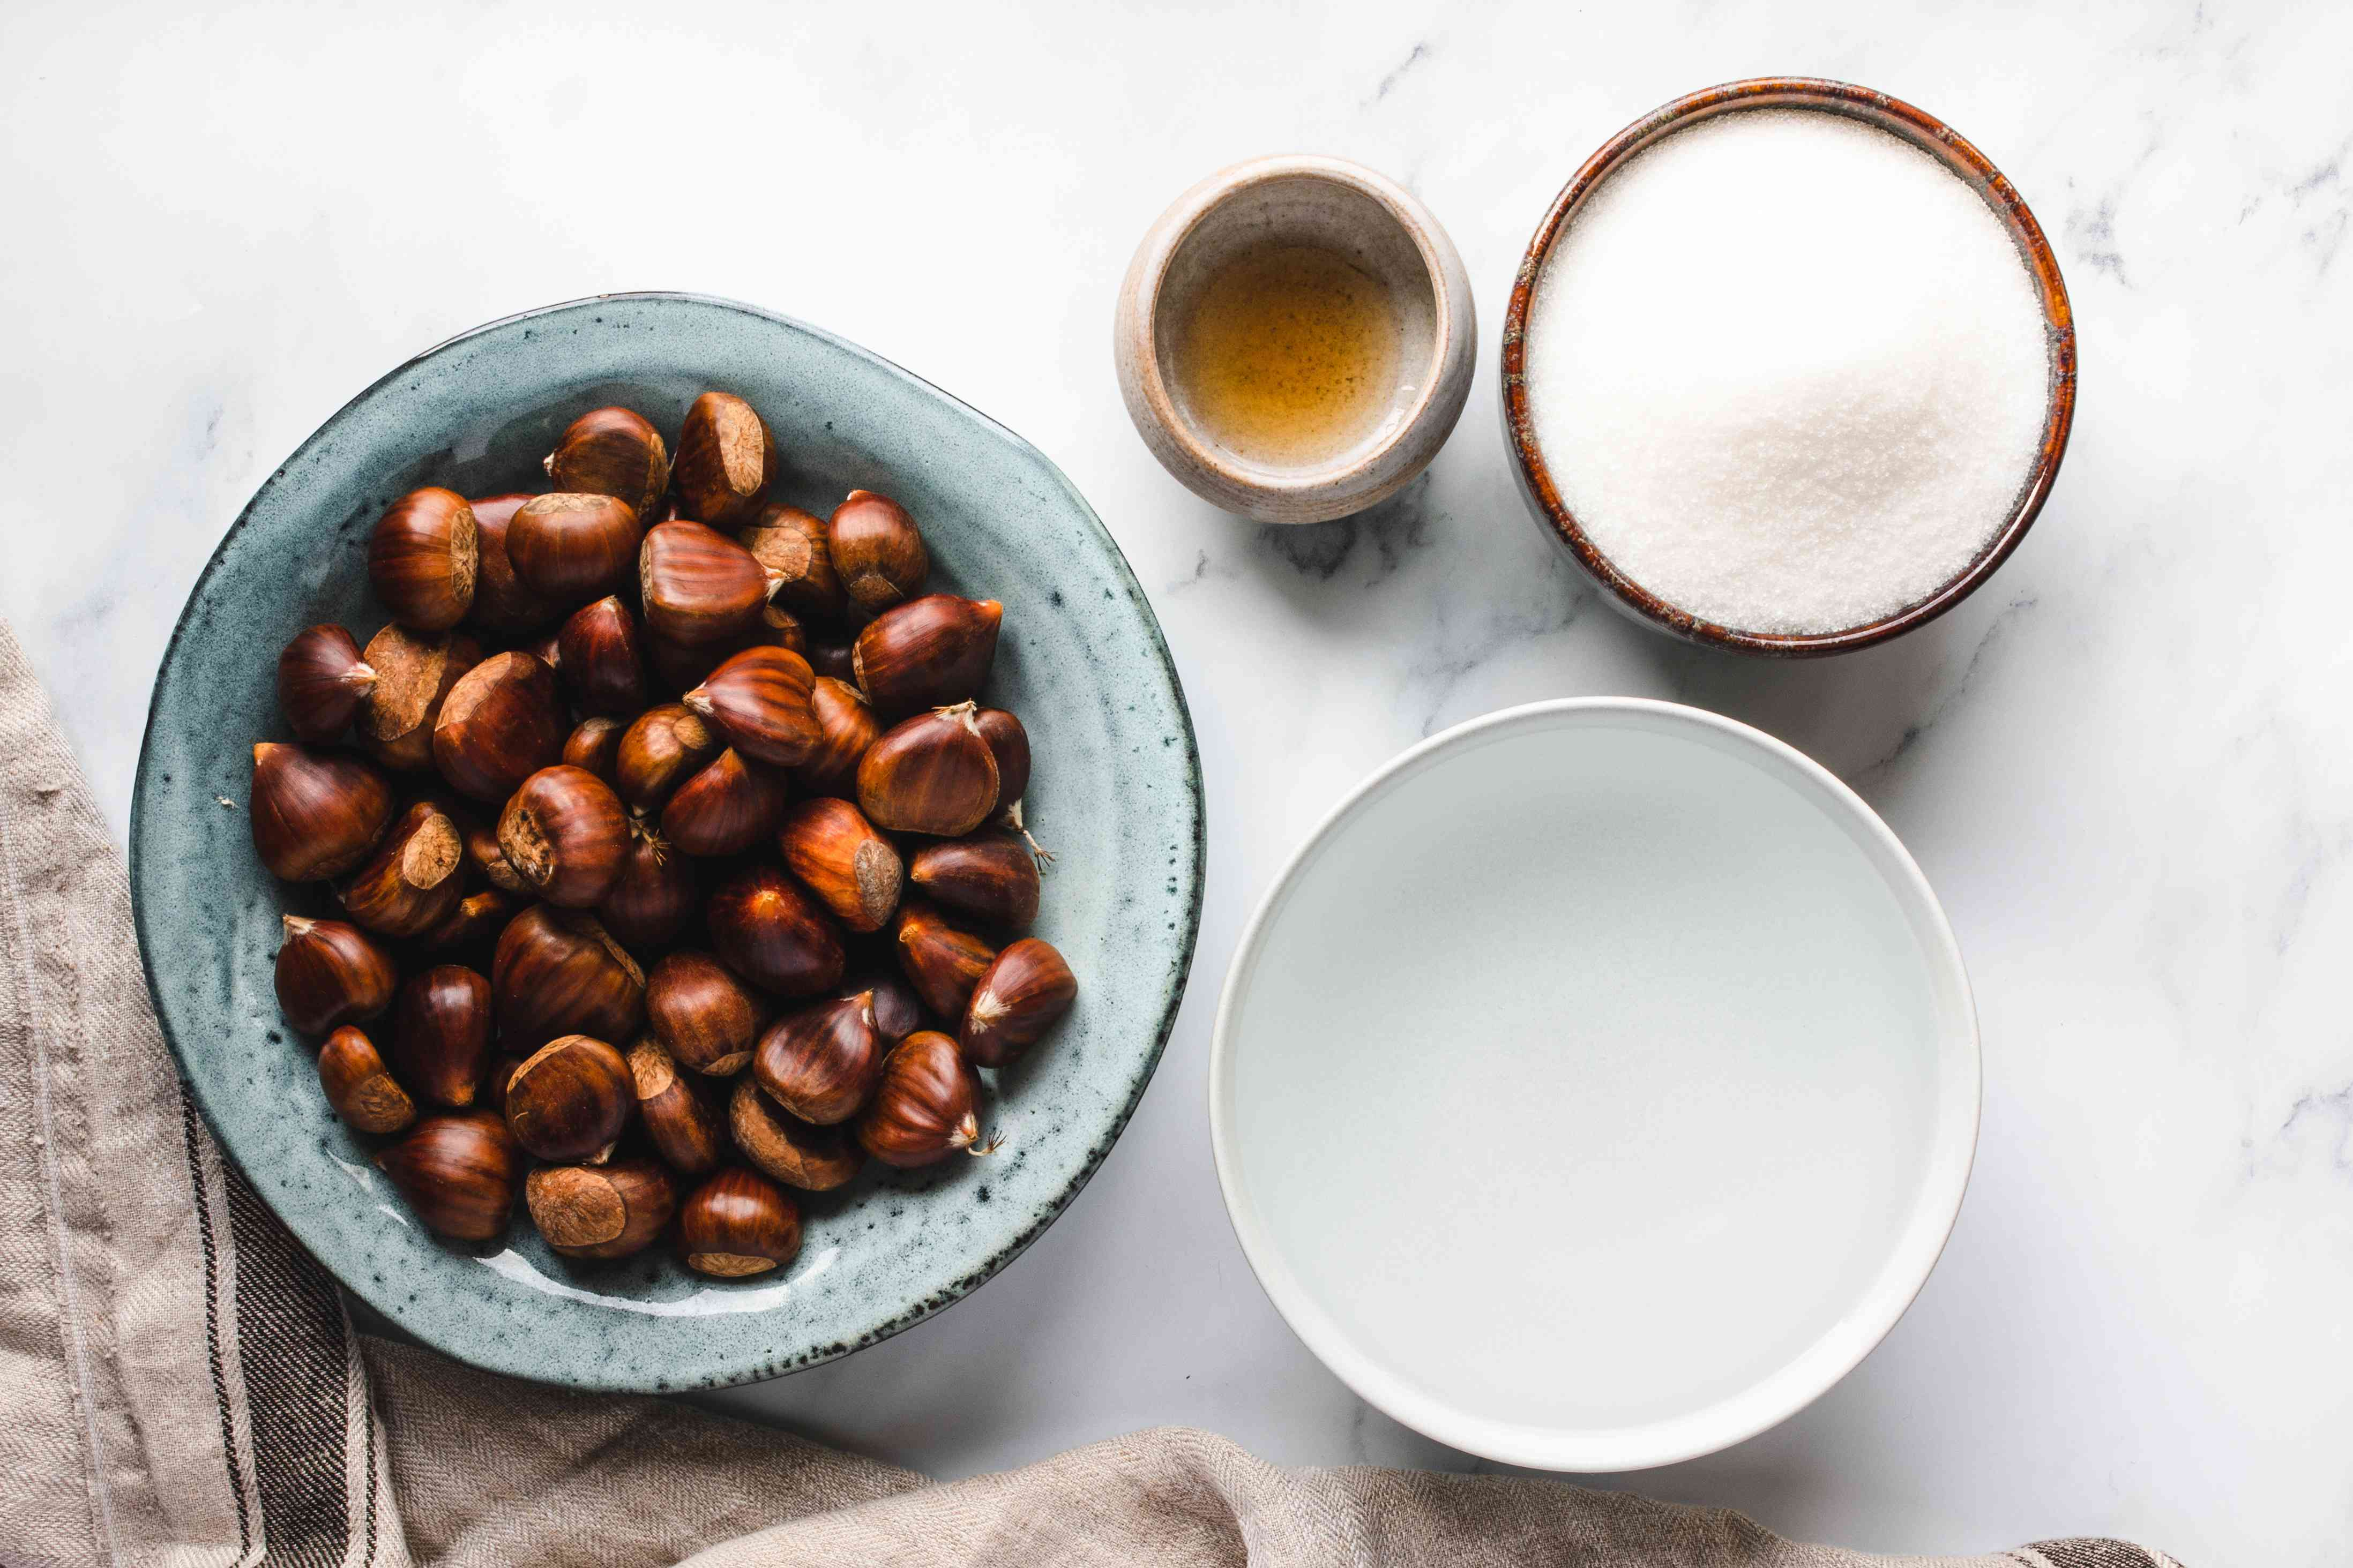 Ingredients for marron's glacé candied chestnuts